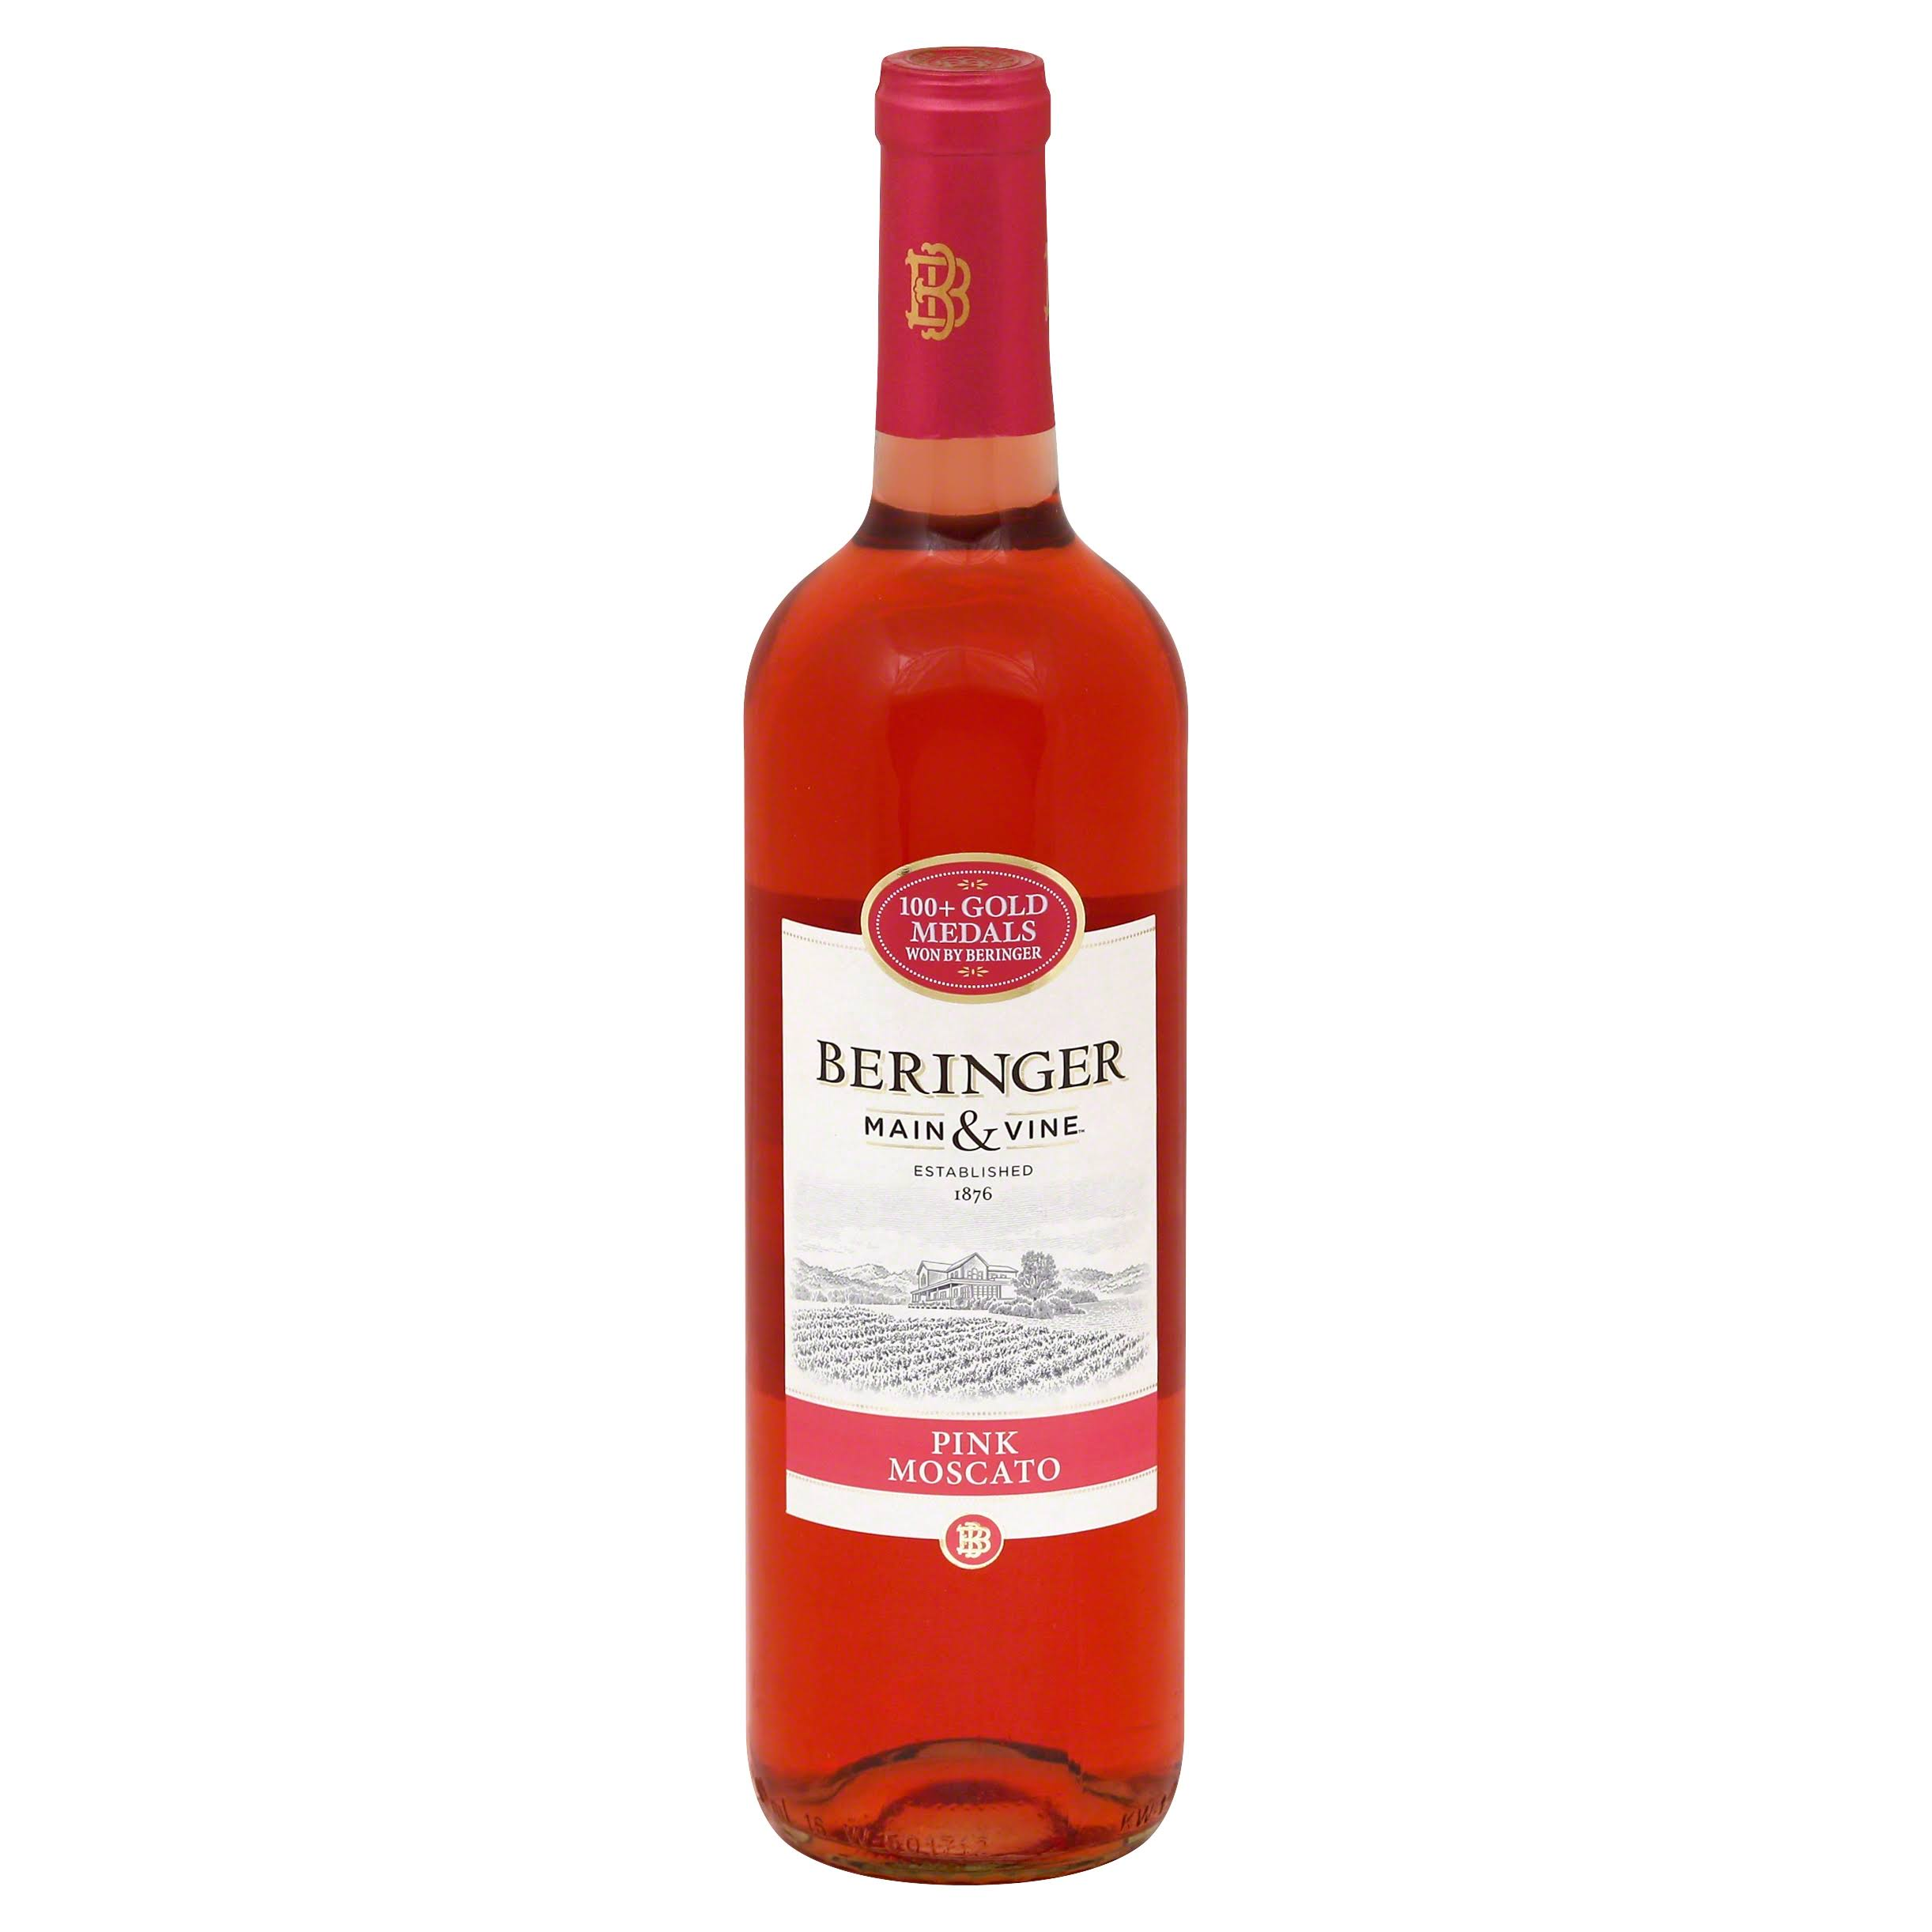 Beringer Main & Vine Moscato, Pink, Chile - 750 ml